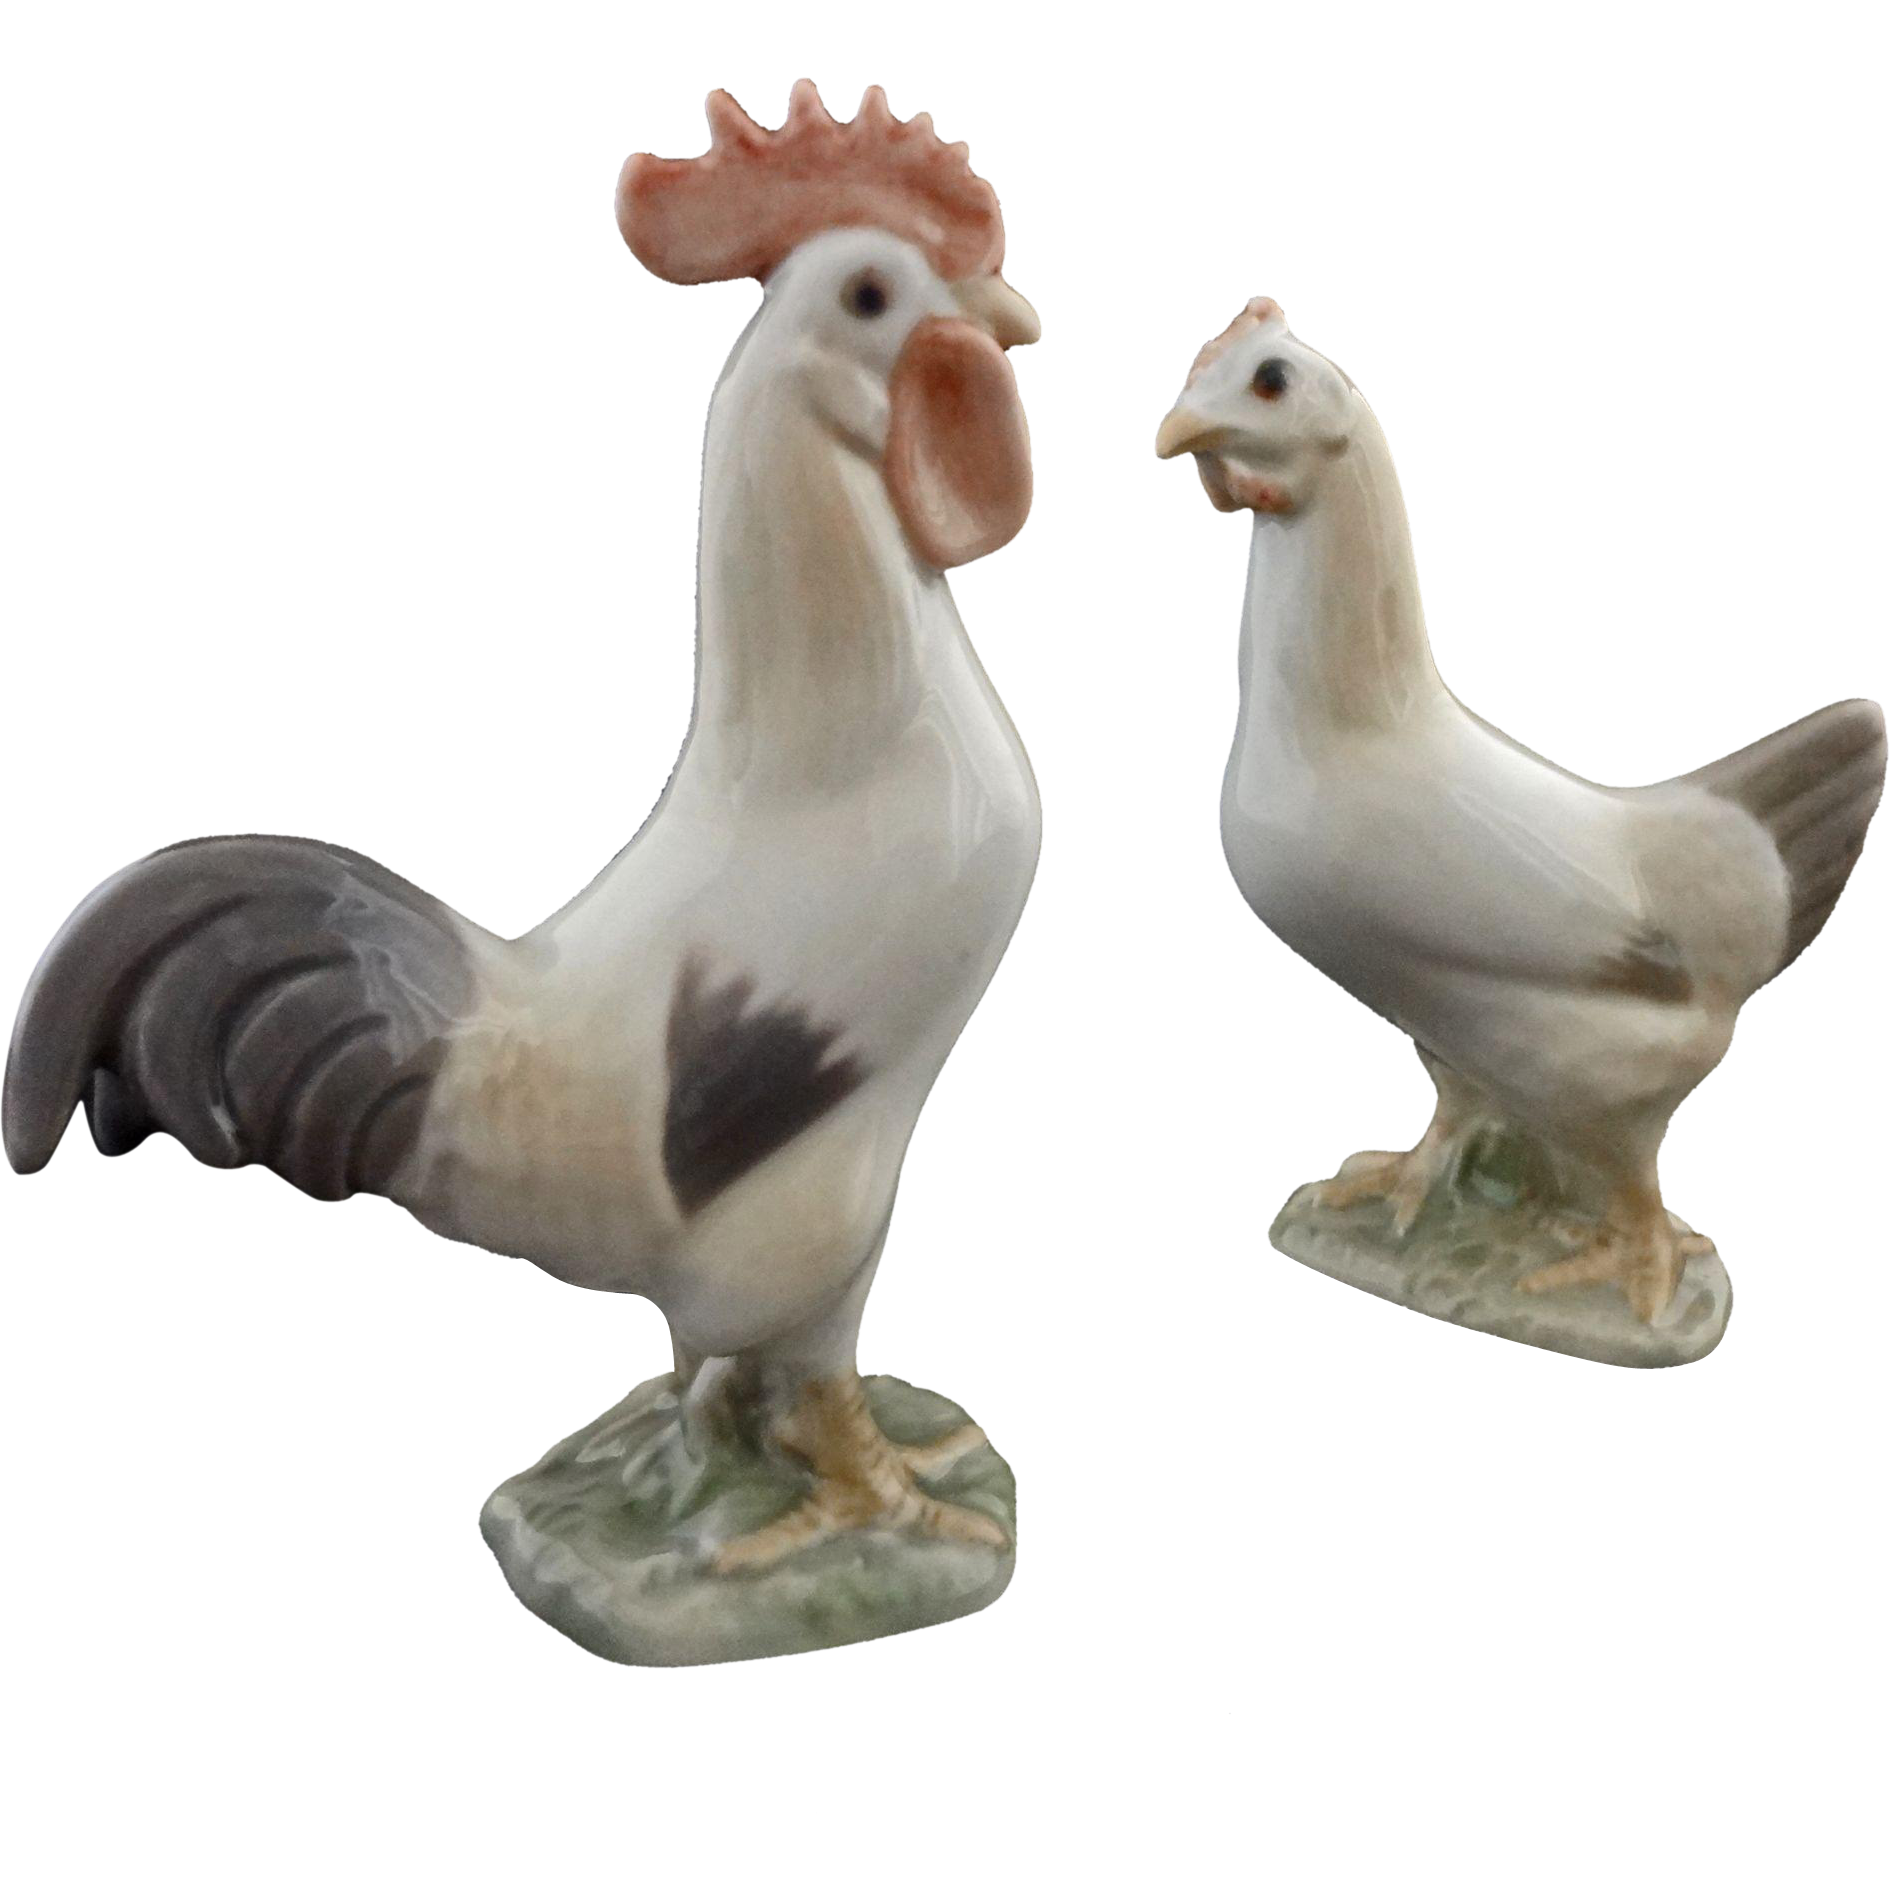 Bing & Grondahl Rooster and Hen Porcelain Figurines - 20th Century, Denmark